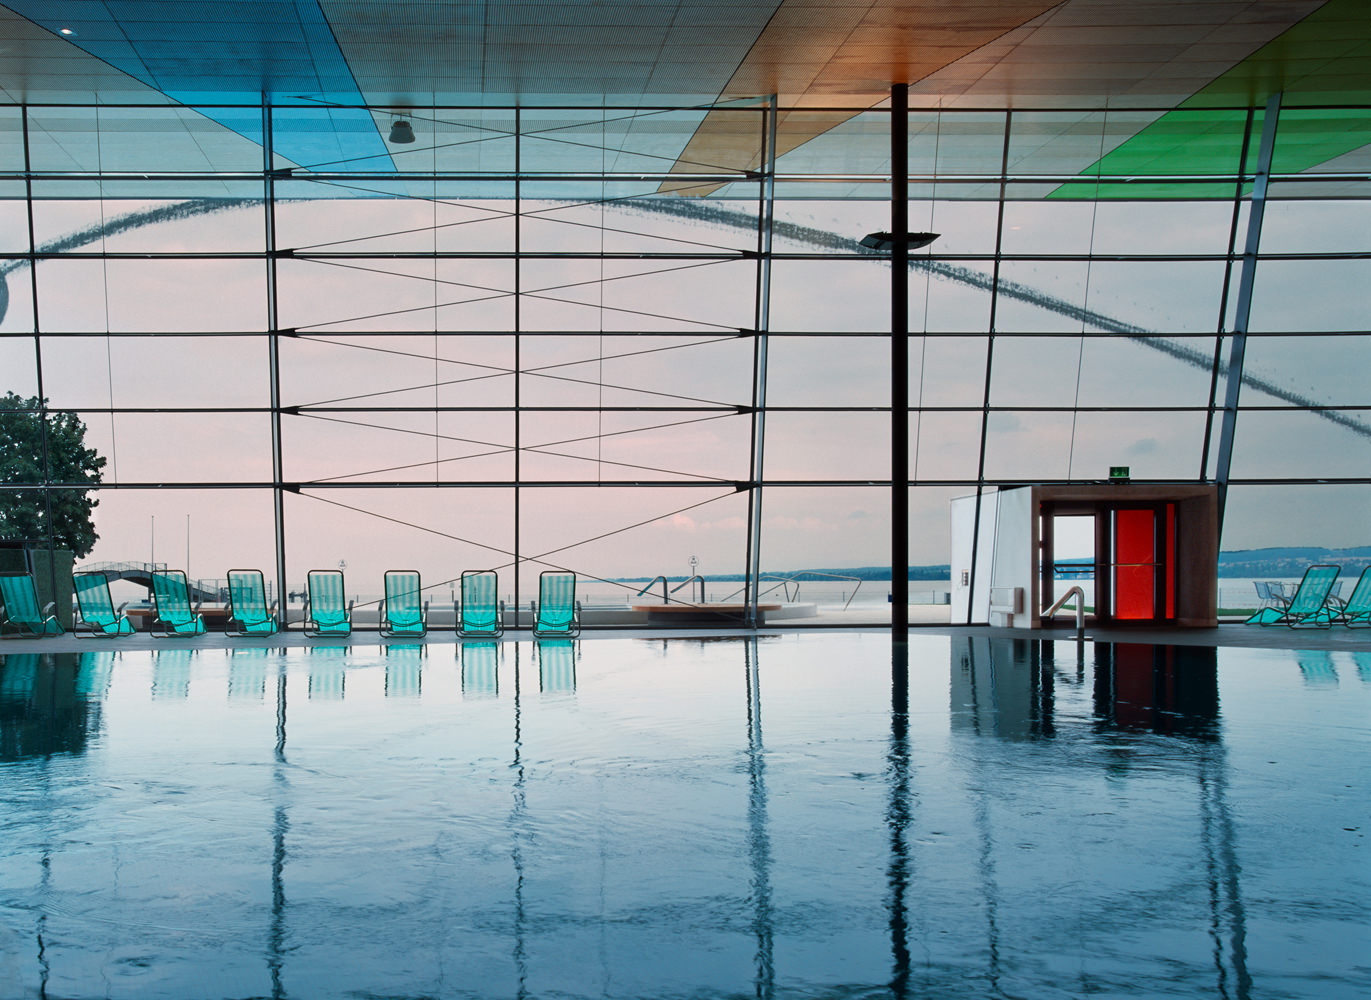 Baths Therme Konstanz 4a Architekten